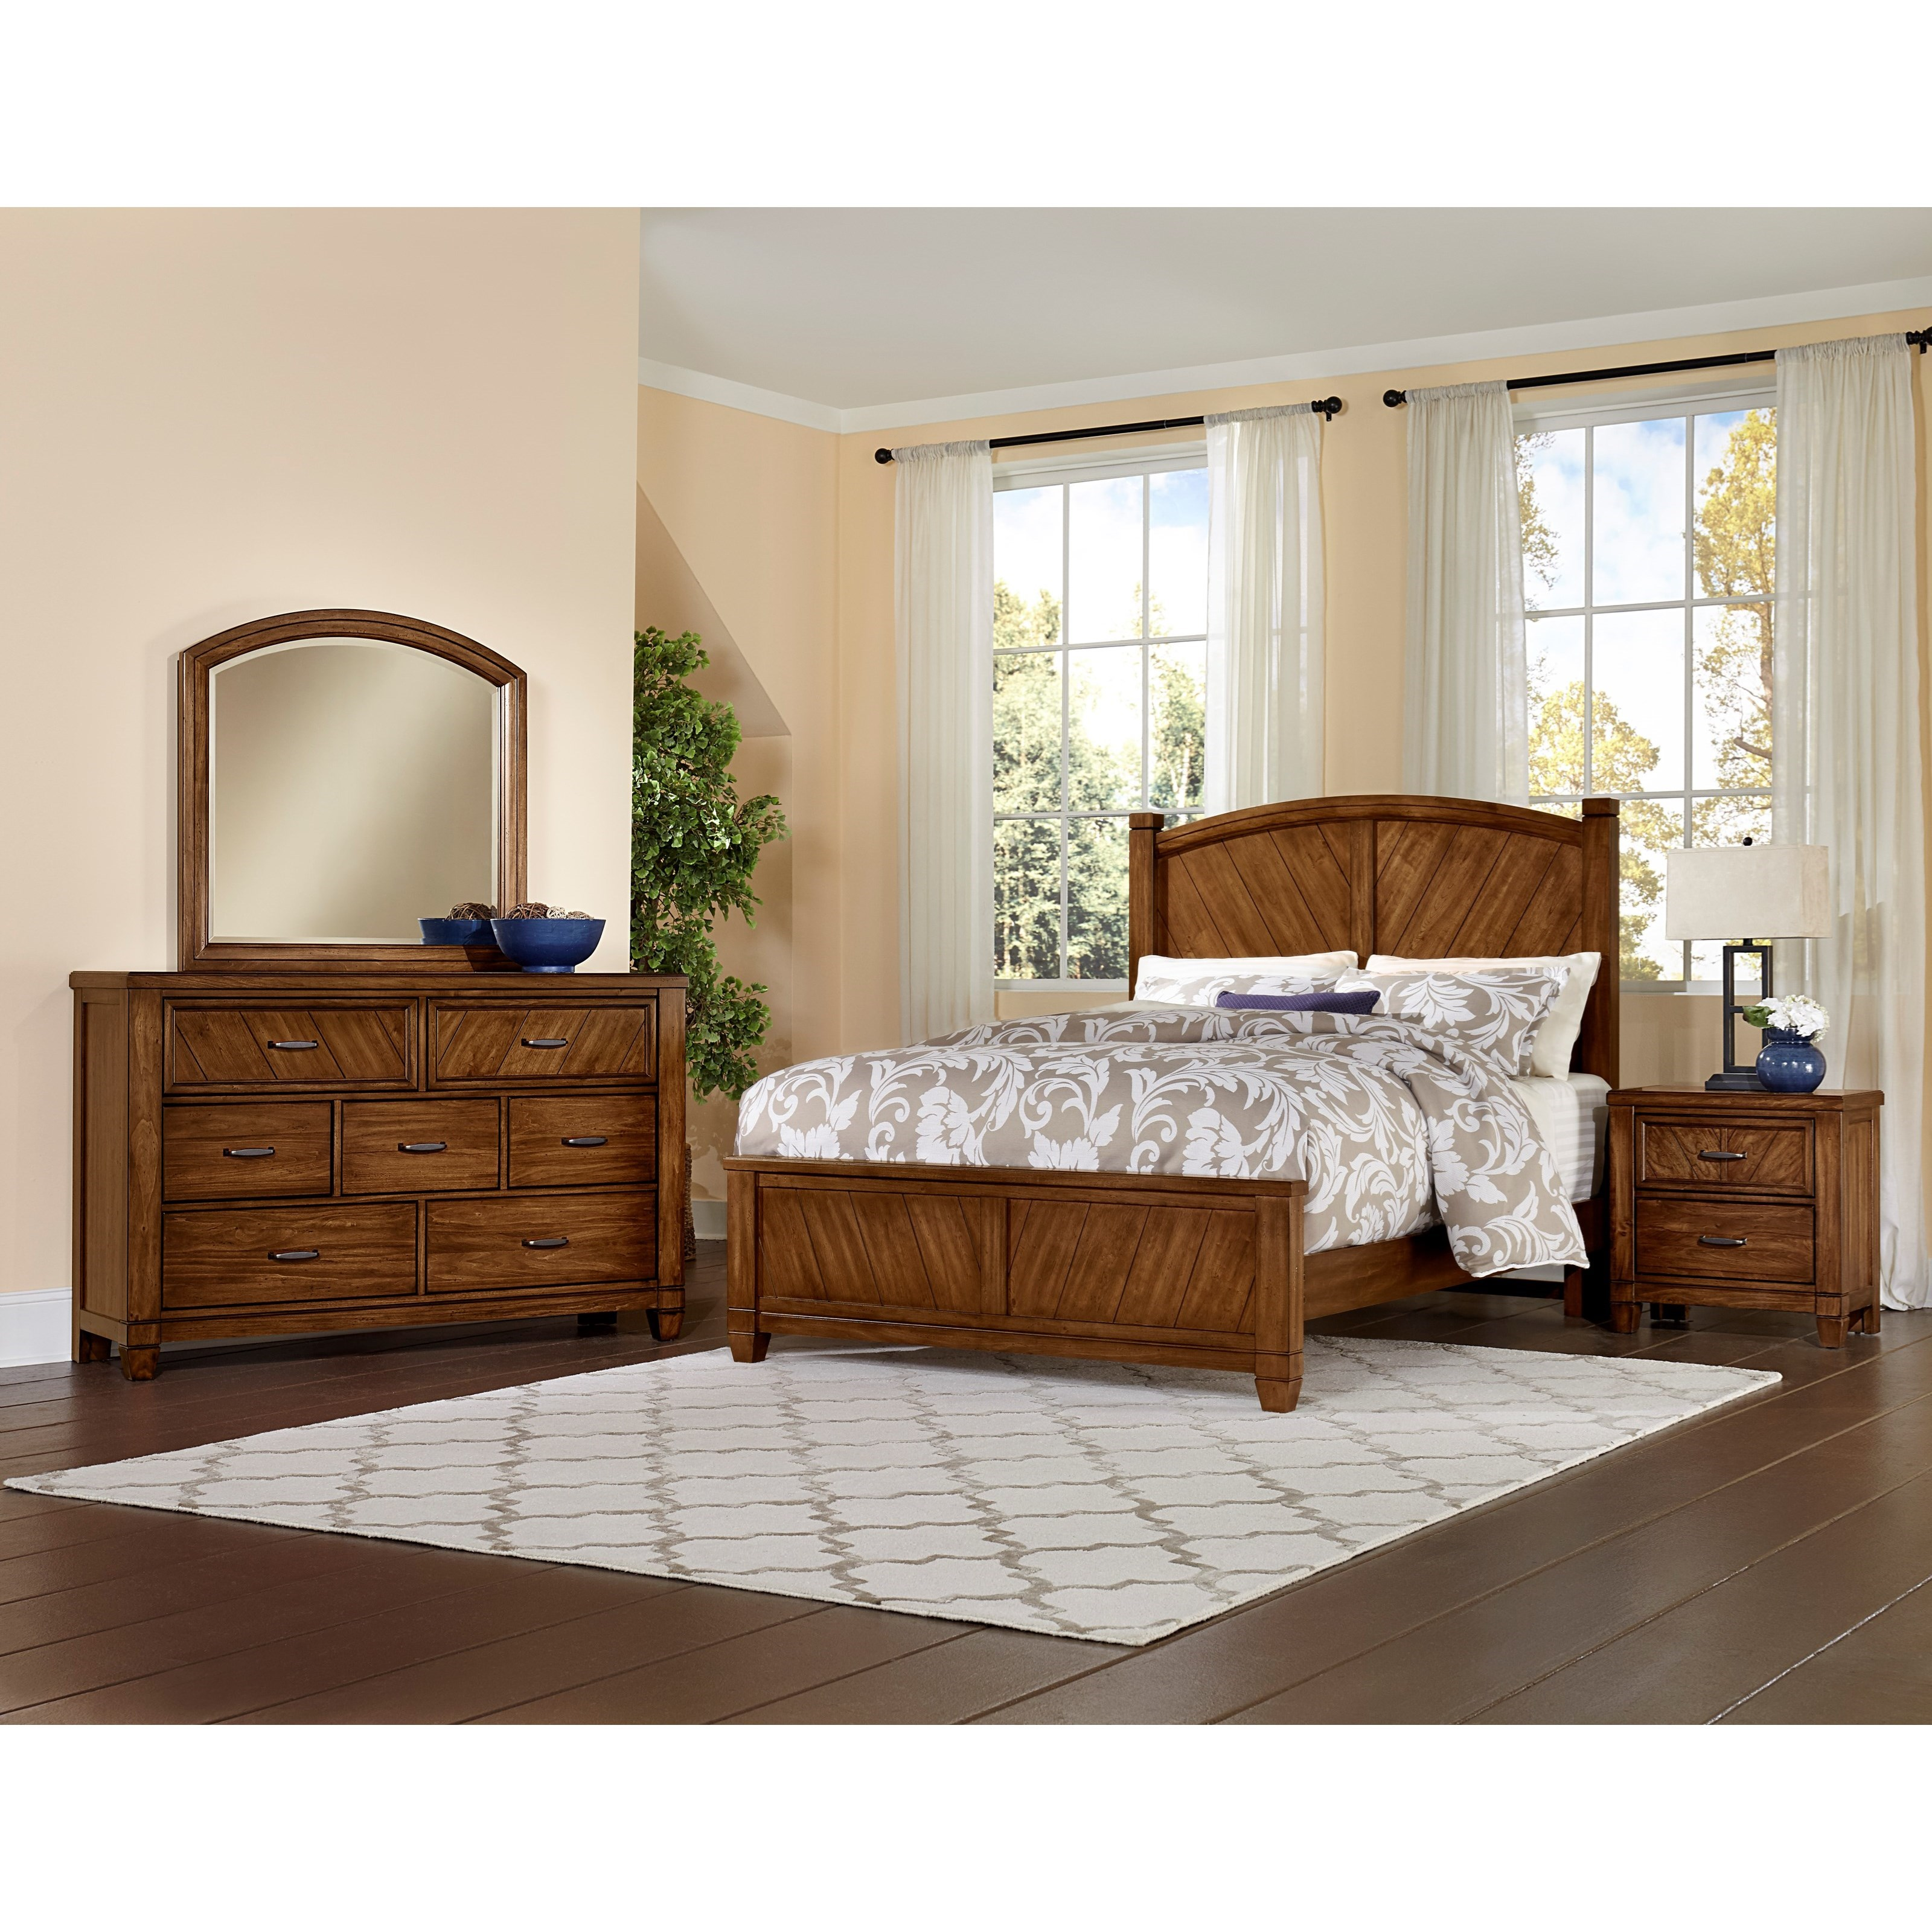 Vaughan Bassett Rustic Cottage Queen Bedroom Group Darvin Furniture Bedroom Groups